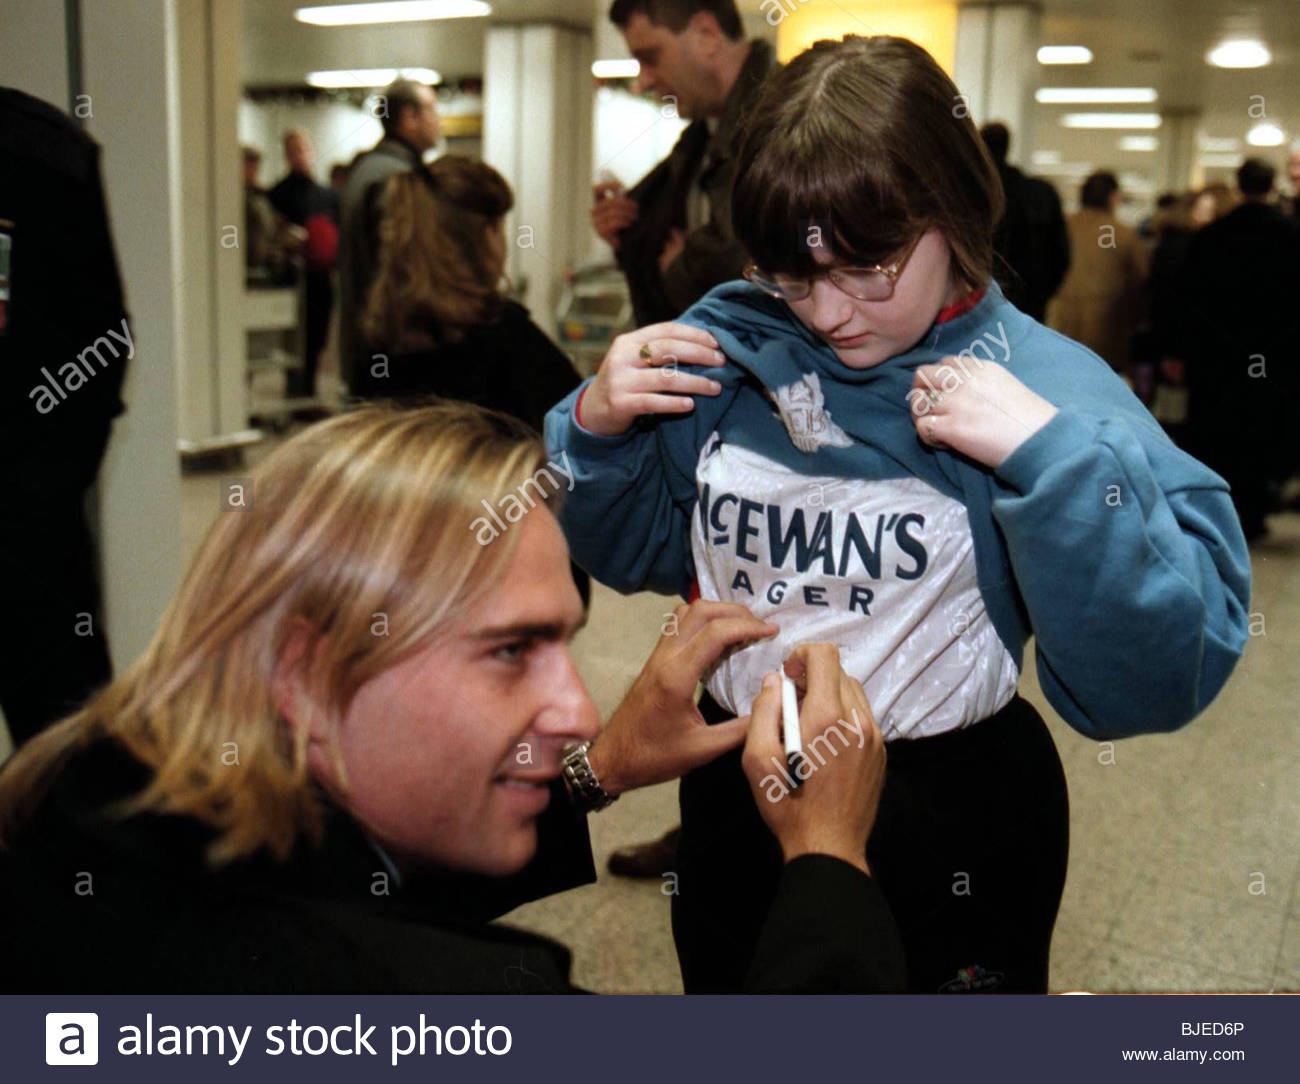 SEASON 1996/1997 GLASGOW AIRPORT New Rangers signing Sebastian Rozental signs the shirt of a young fan. - Stock Image